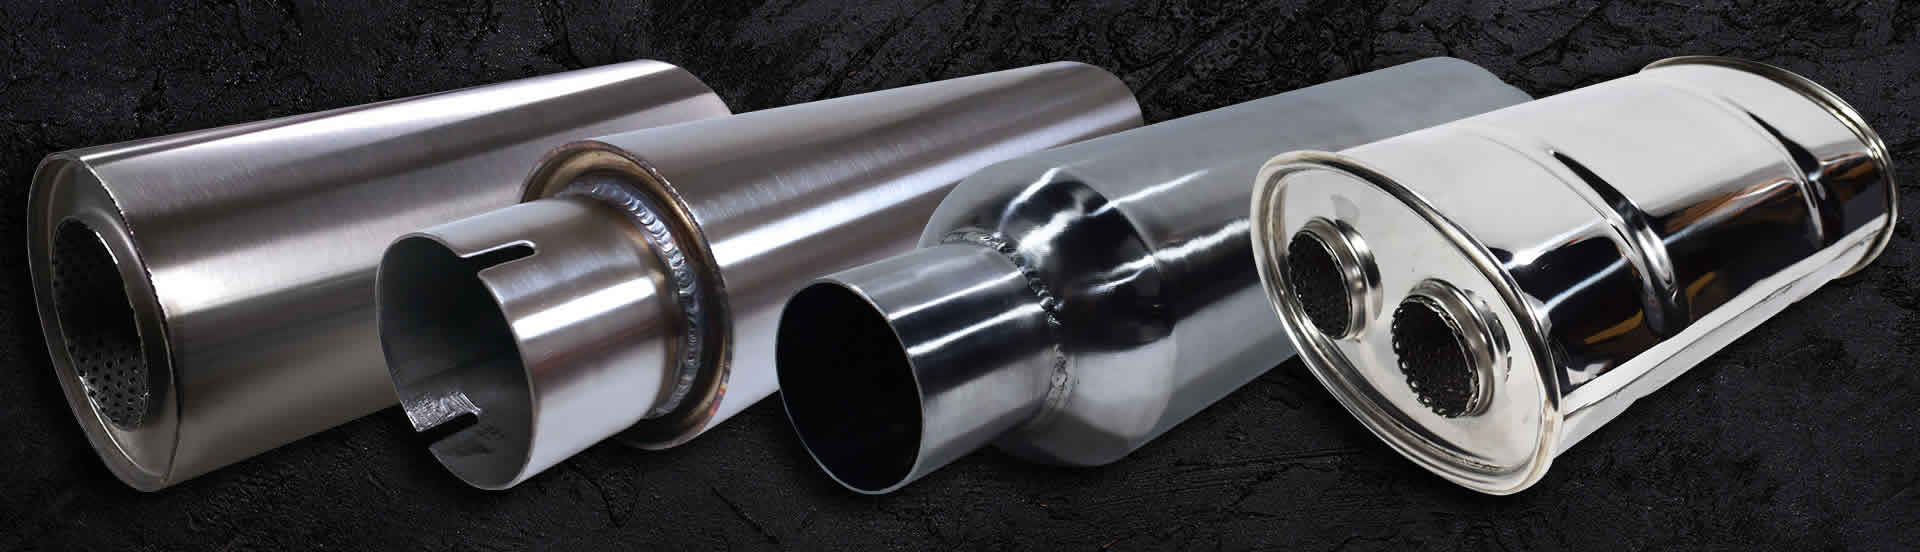 exhaust parts uk walsall 304 316